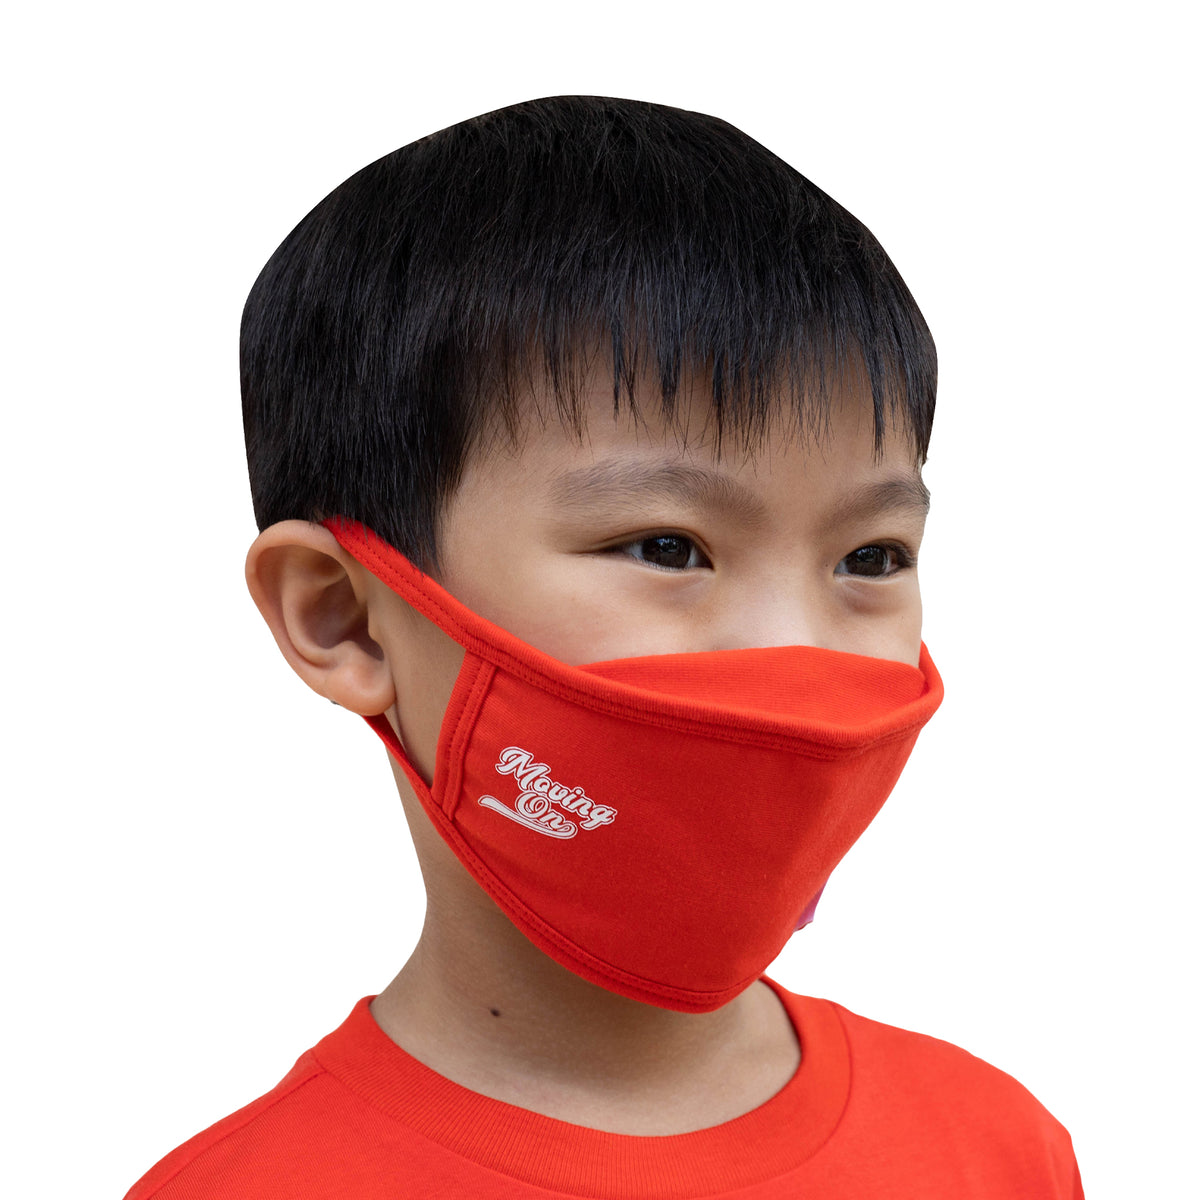 ULTRA A Anti-Bacterial Tee + 3-Ply Anti-Bacterial Mask Co-Ord Set (Moving On - Kids)